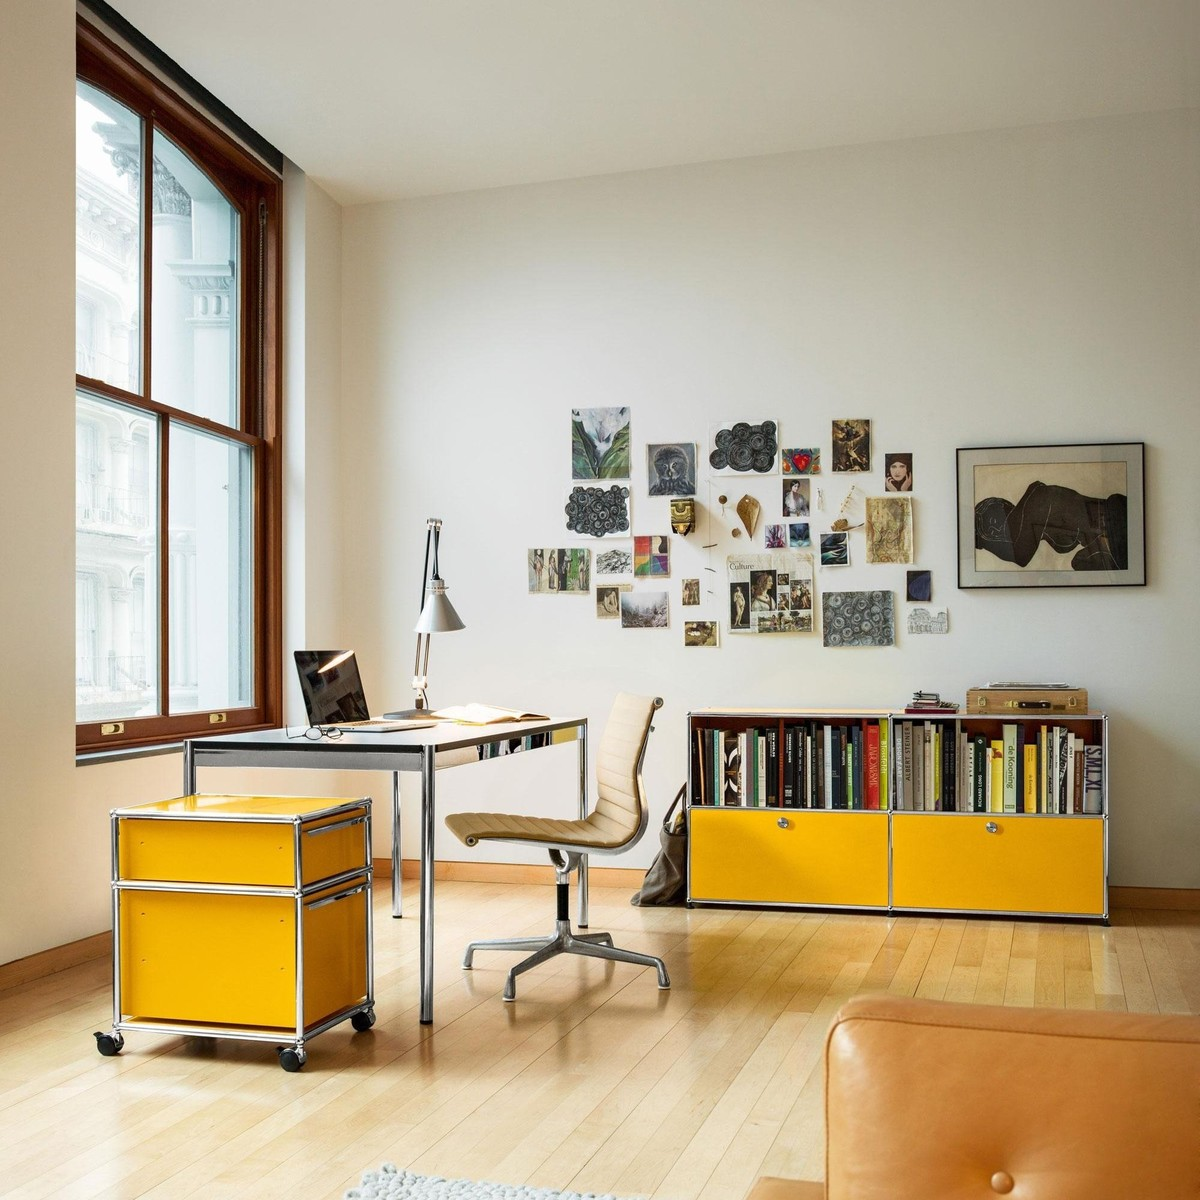 Usm Sideboard With 2 Drawers Usm Haller Ambientedirect Com # Meuble Tv Usm Haller